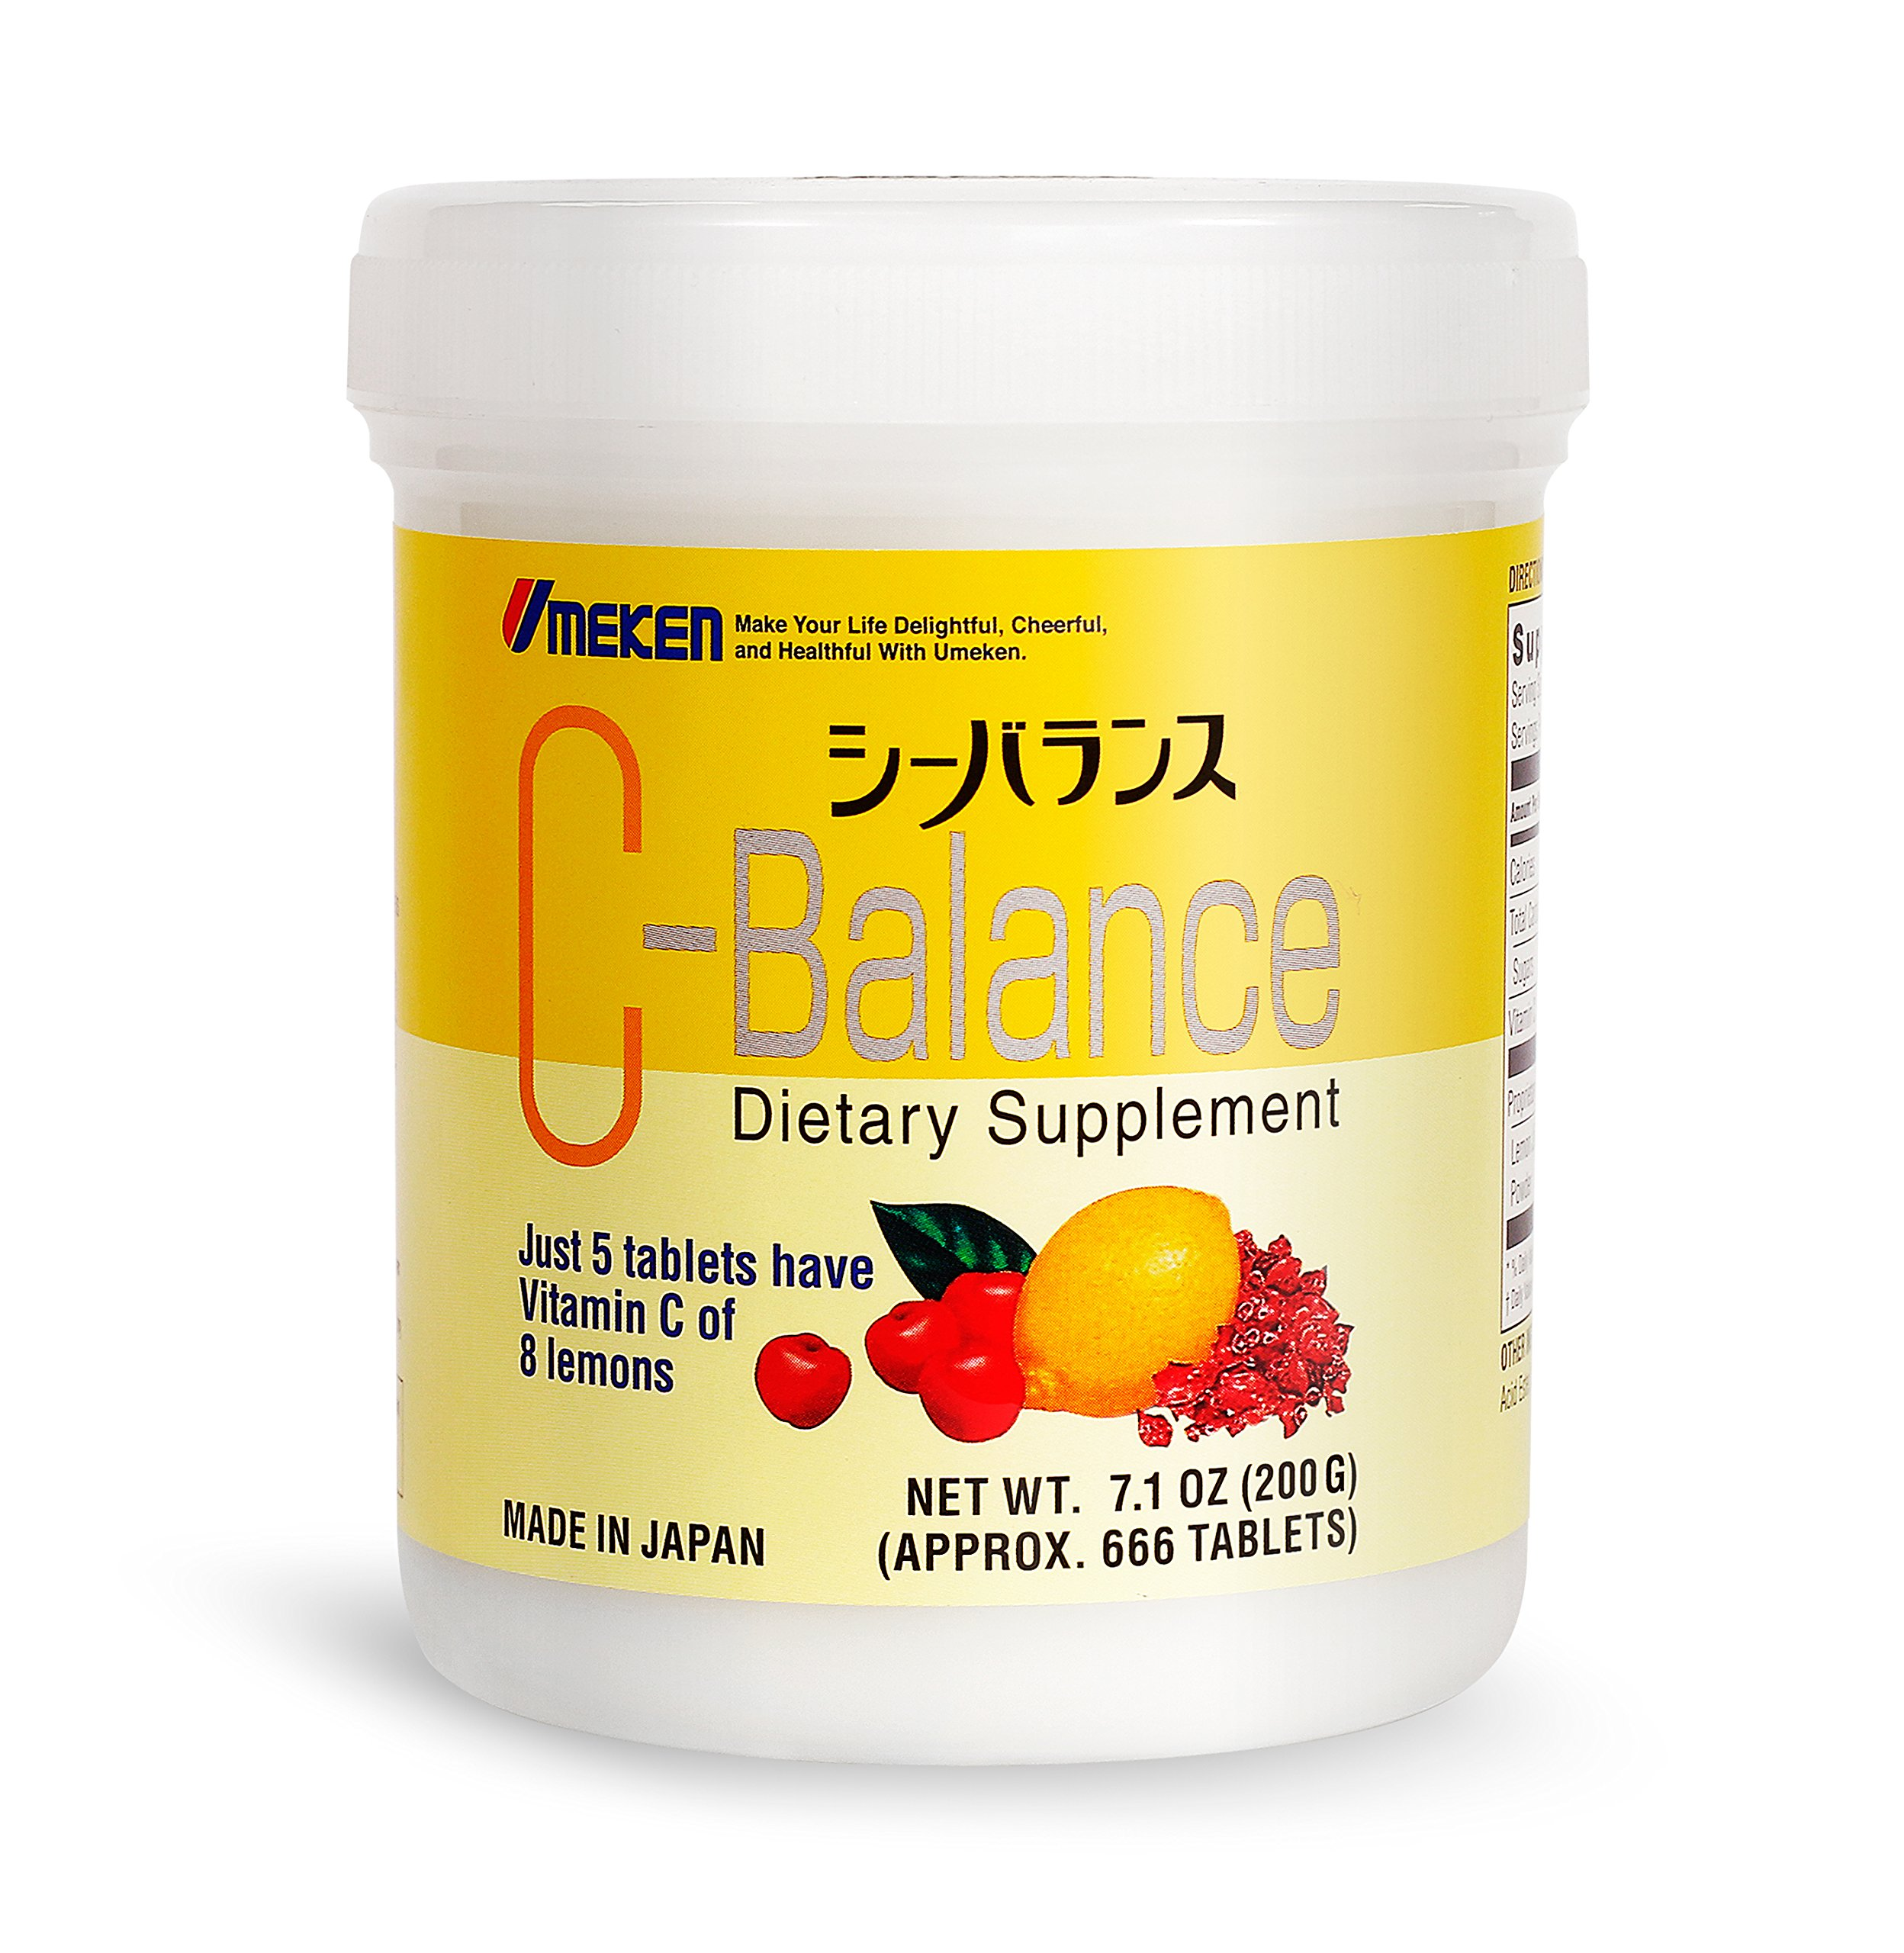 Umeken C-Balance (200g) - Highly Concentrated Vitamin C containing antioxidants, Citric Acid, Gamma-linolenic Acid. Chewable, Great for Kids. Made in Japan.